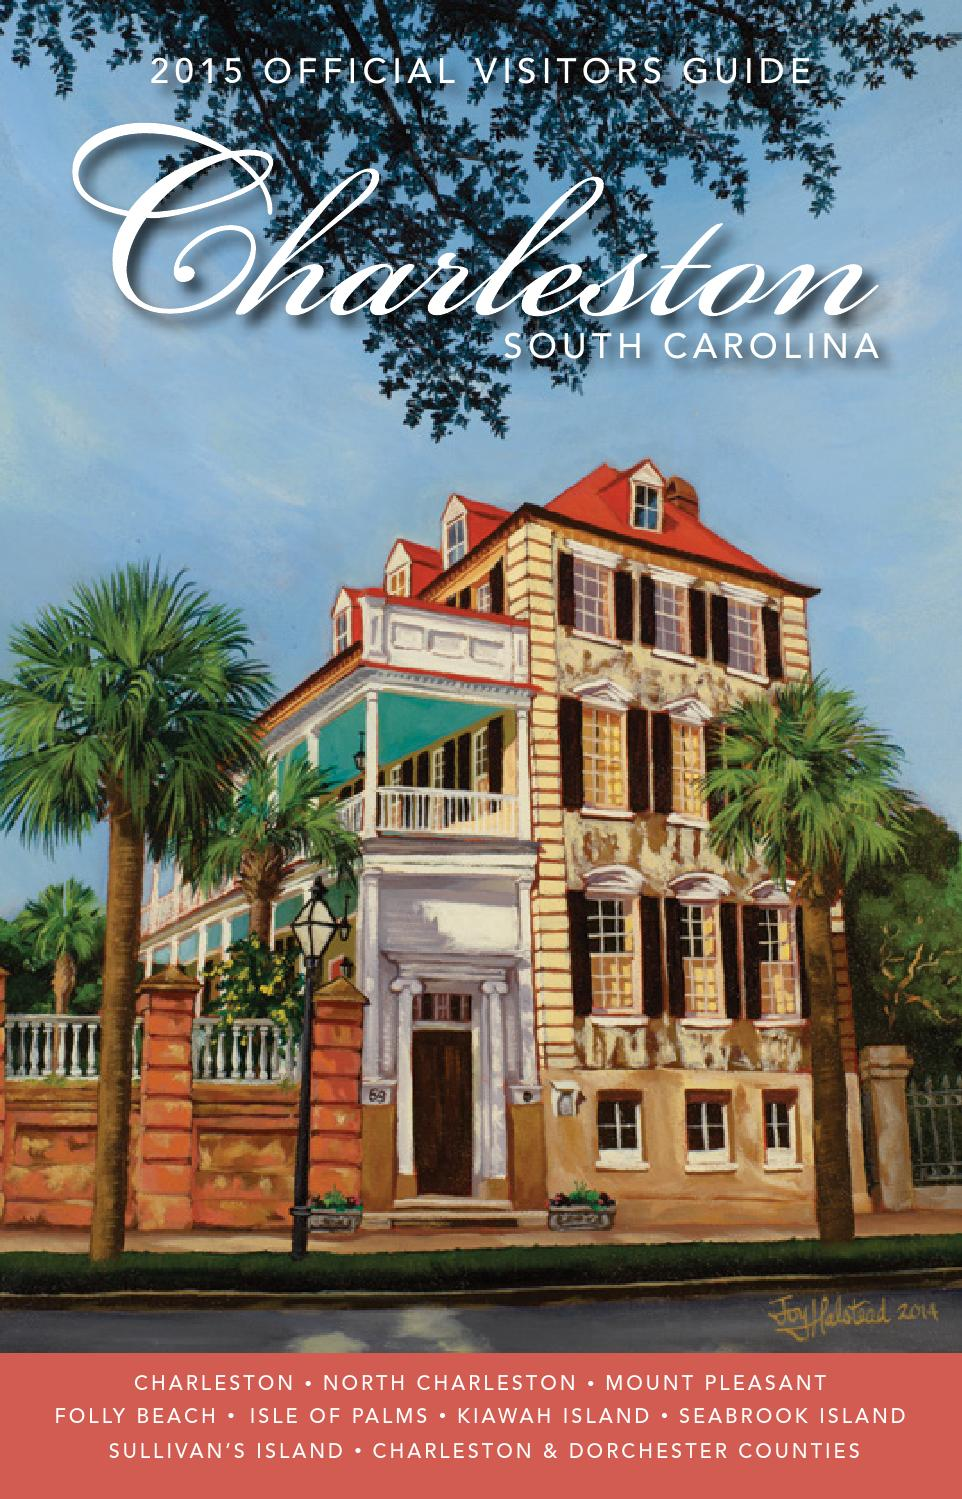 official charleston area south carolina visitors guide by explore charleston issuu. Black Bedroom Furniture Sets. Home Design Ideas